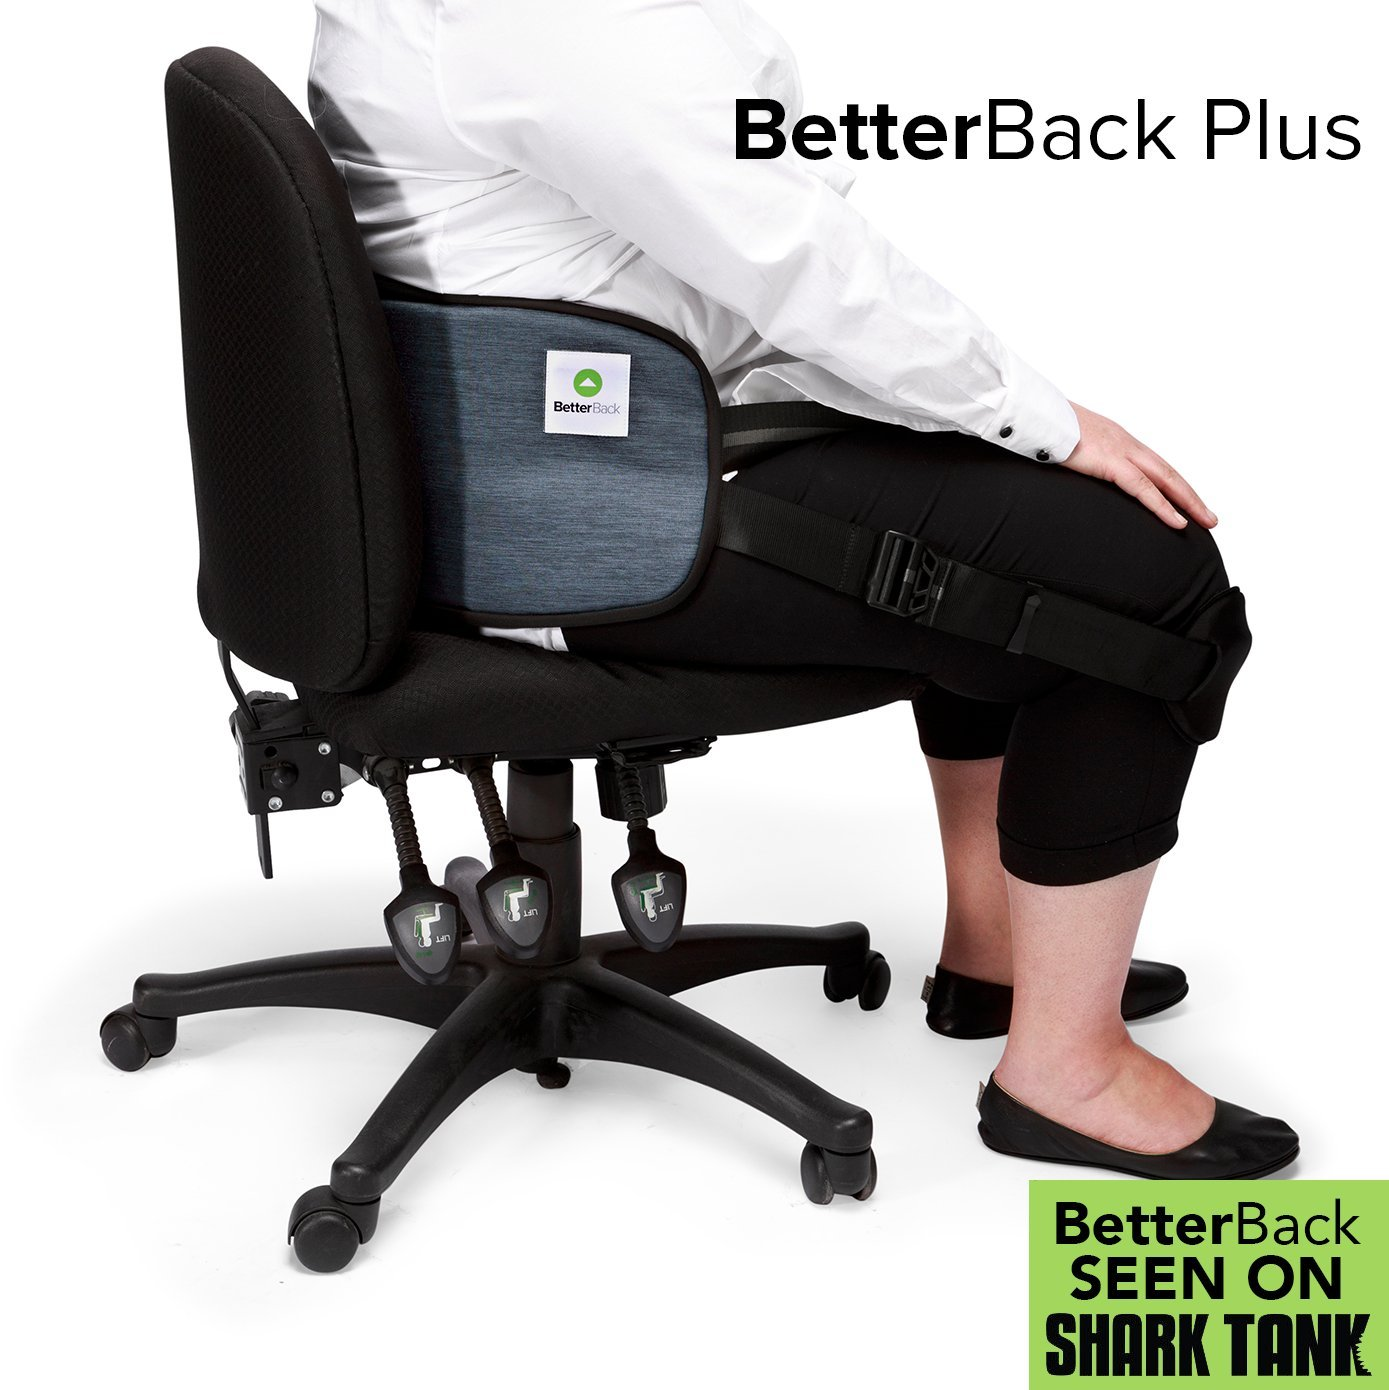 BetterBack Plus - Ease Back Pain & Effortlessly Sit in Perfect Posture - with NASA Memory Foam Padding - Make Every Chair Ergonomic - Fits Women and Men with 37-55'' Waist by BetterBack